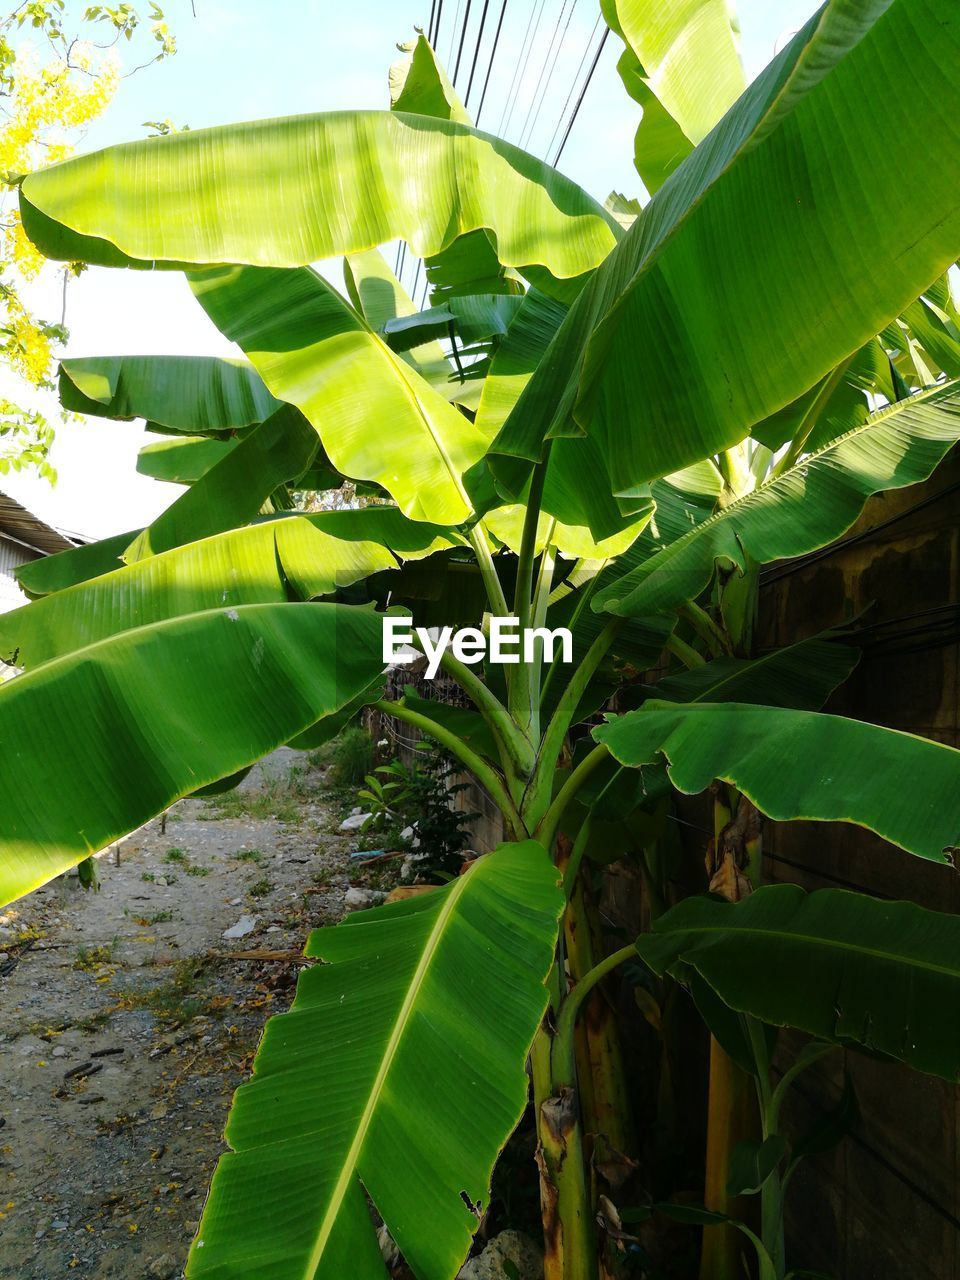 leaf, banana tree, banana leaf, green color, growth, nature, sunlight, no people, day, outdoors, beauty in nature, close-up, freshness, sky